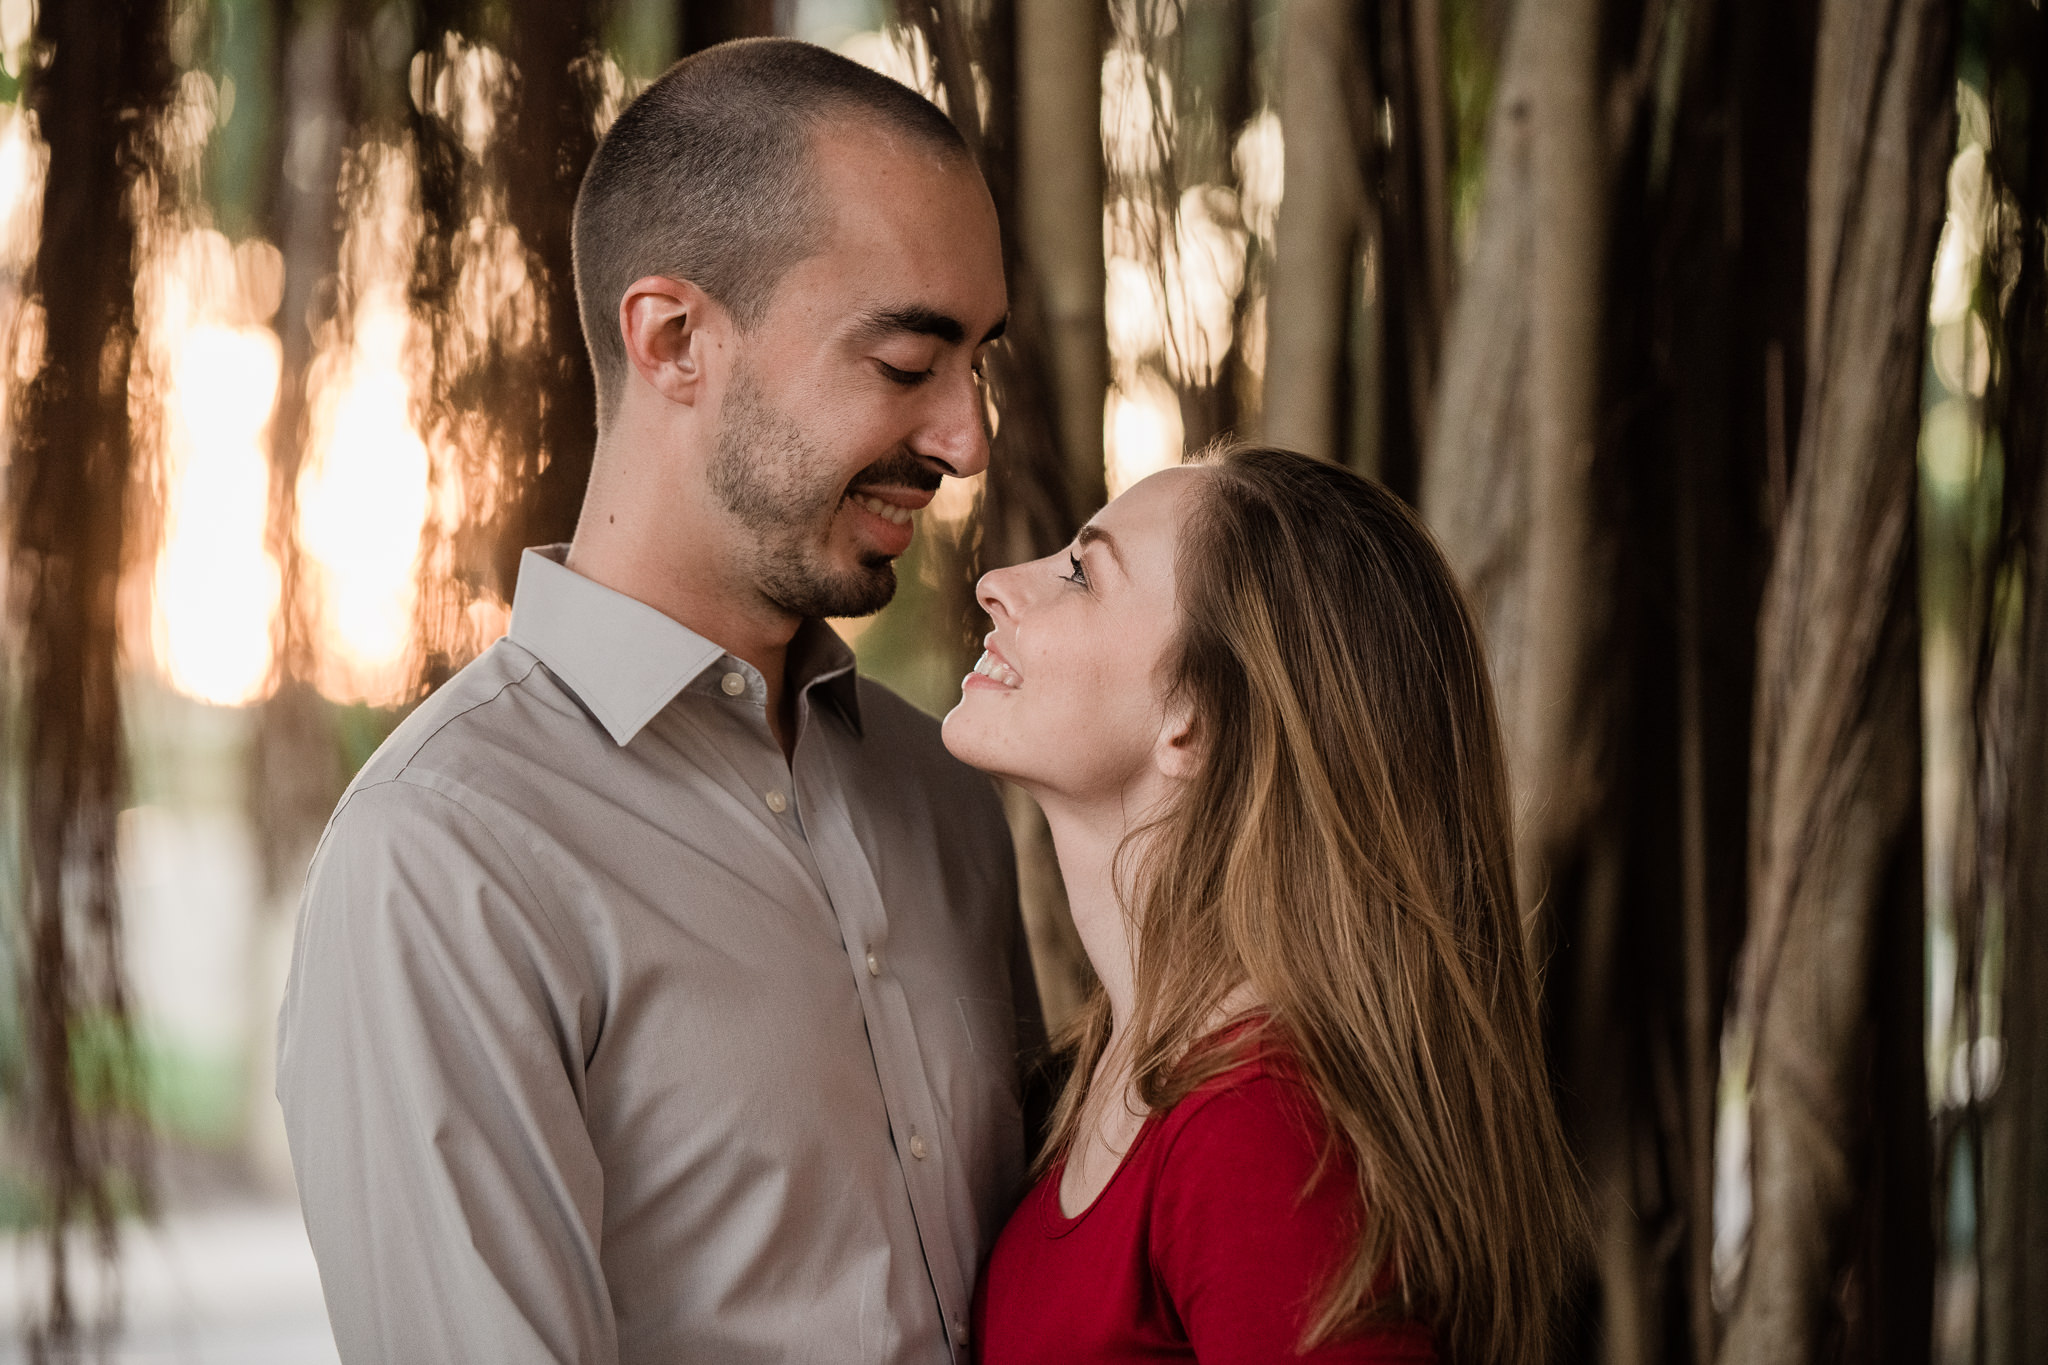 TAMPA_ENGAGEMENT_PHOTOGRAPHER_SMMZ_9533.jpg